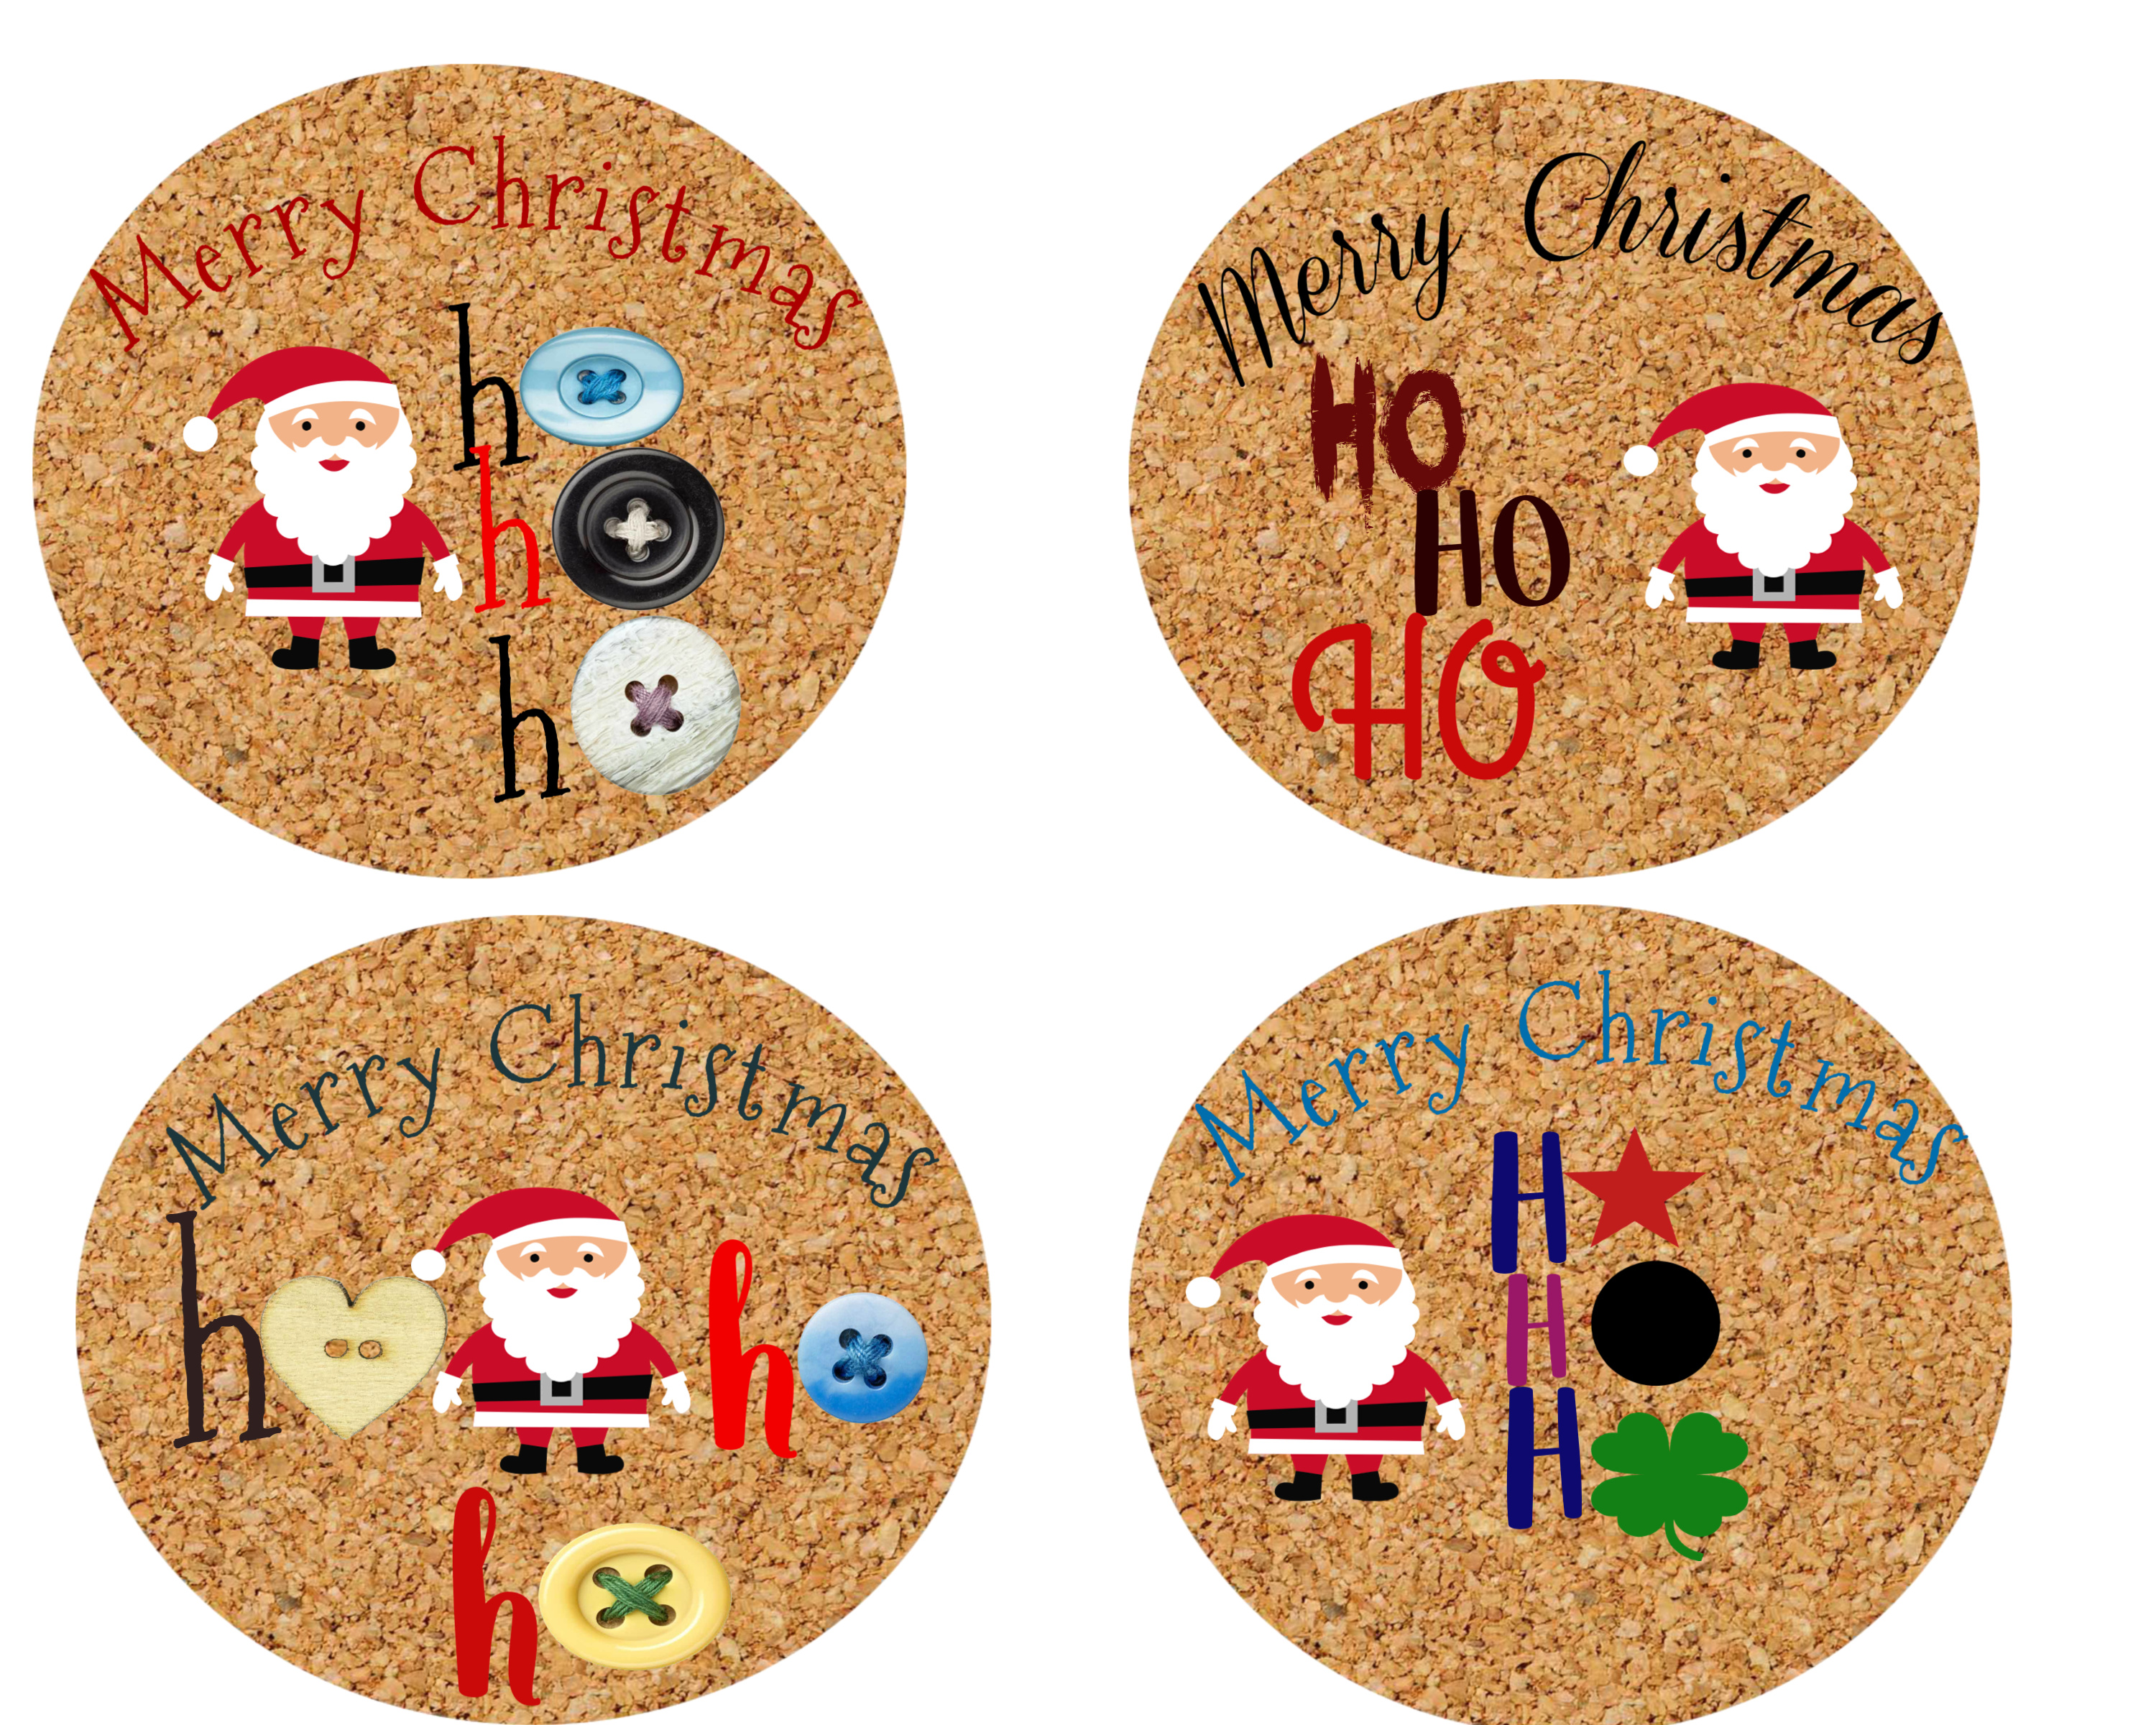 image about Printable Christmas Stickers named Xmas Planner Strategies: A Santa Claus Printable Sticker towards Brighten up Oneself Bullet Magazine.